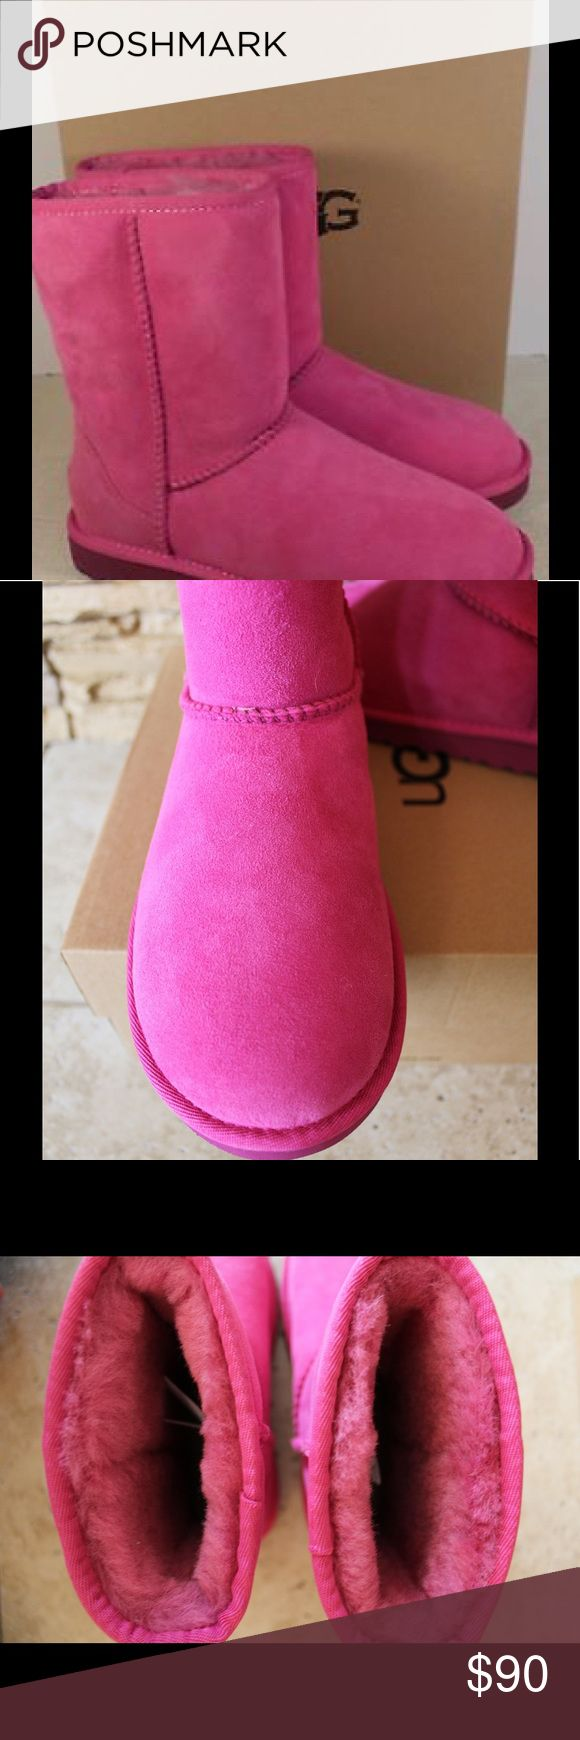 NIB UGG Classic Short Suede Boots Suede upper and shearling lined.  EVA outsole for durability.  These are youth sizes so 4, 5, and 6 youth is the equivalent to women's 6, 7, and 8. UGG Shoes Winter & Rain Boots